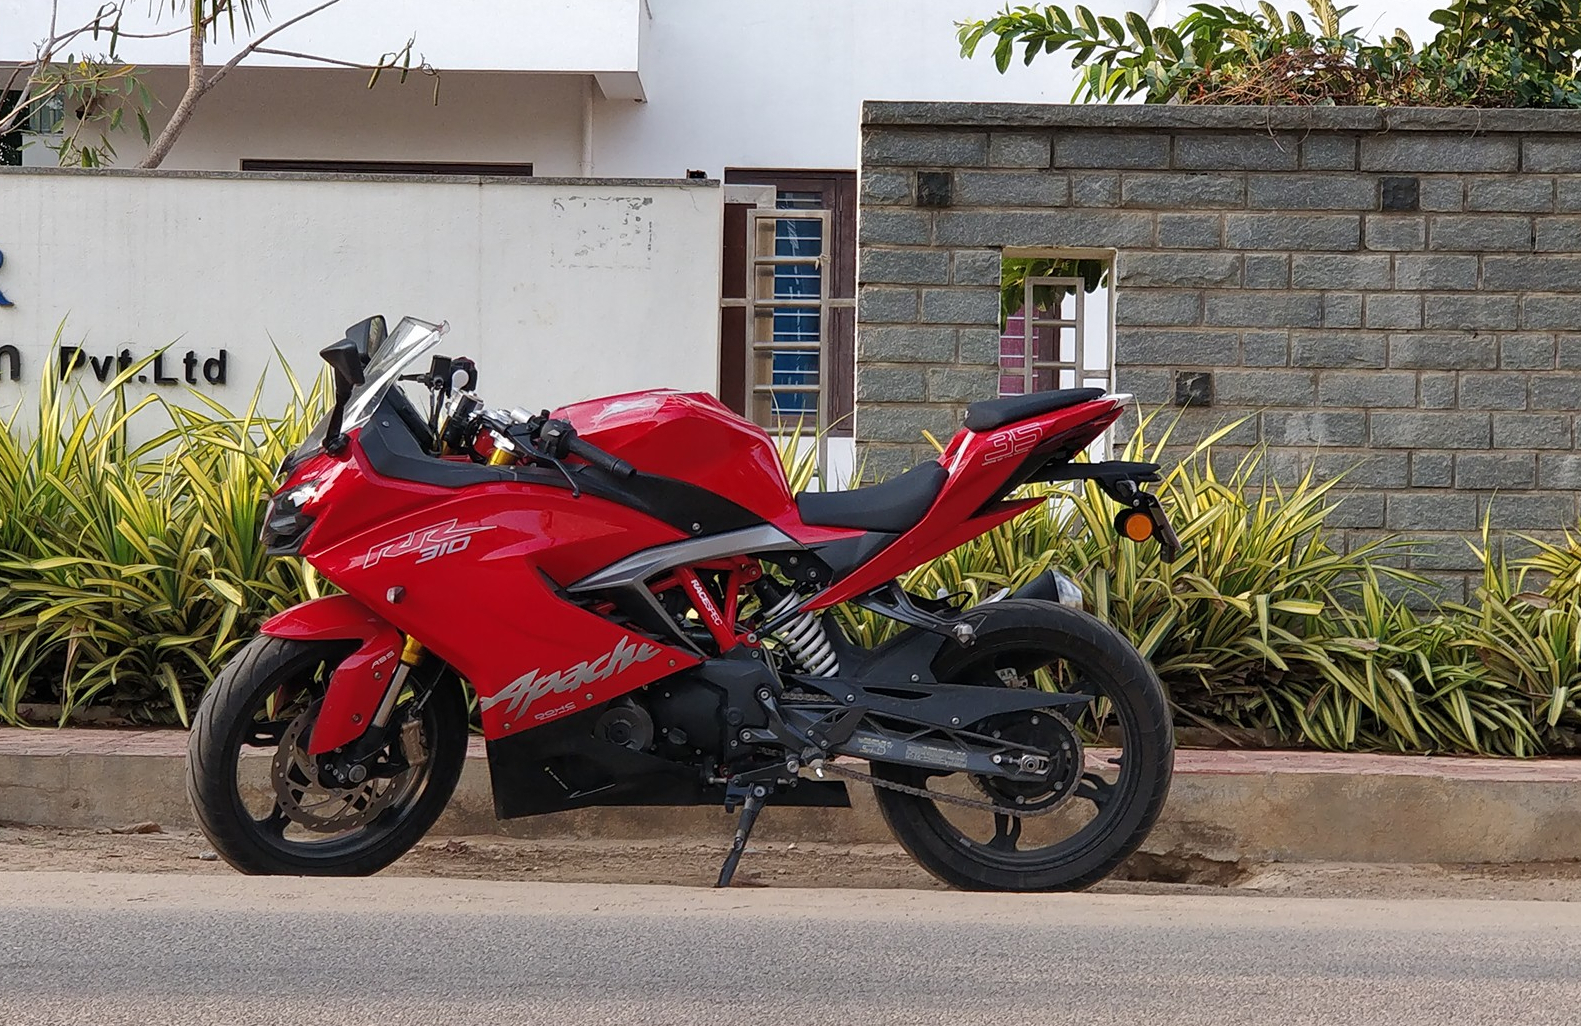 Incredible Tvs Apache Rr 310 Wikipedia Alphanode Cool Chair Designs And Ideas Alphanodeonline